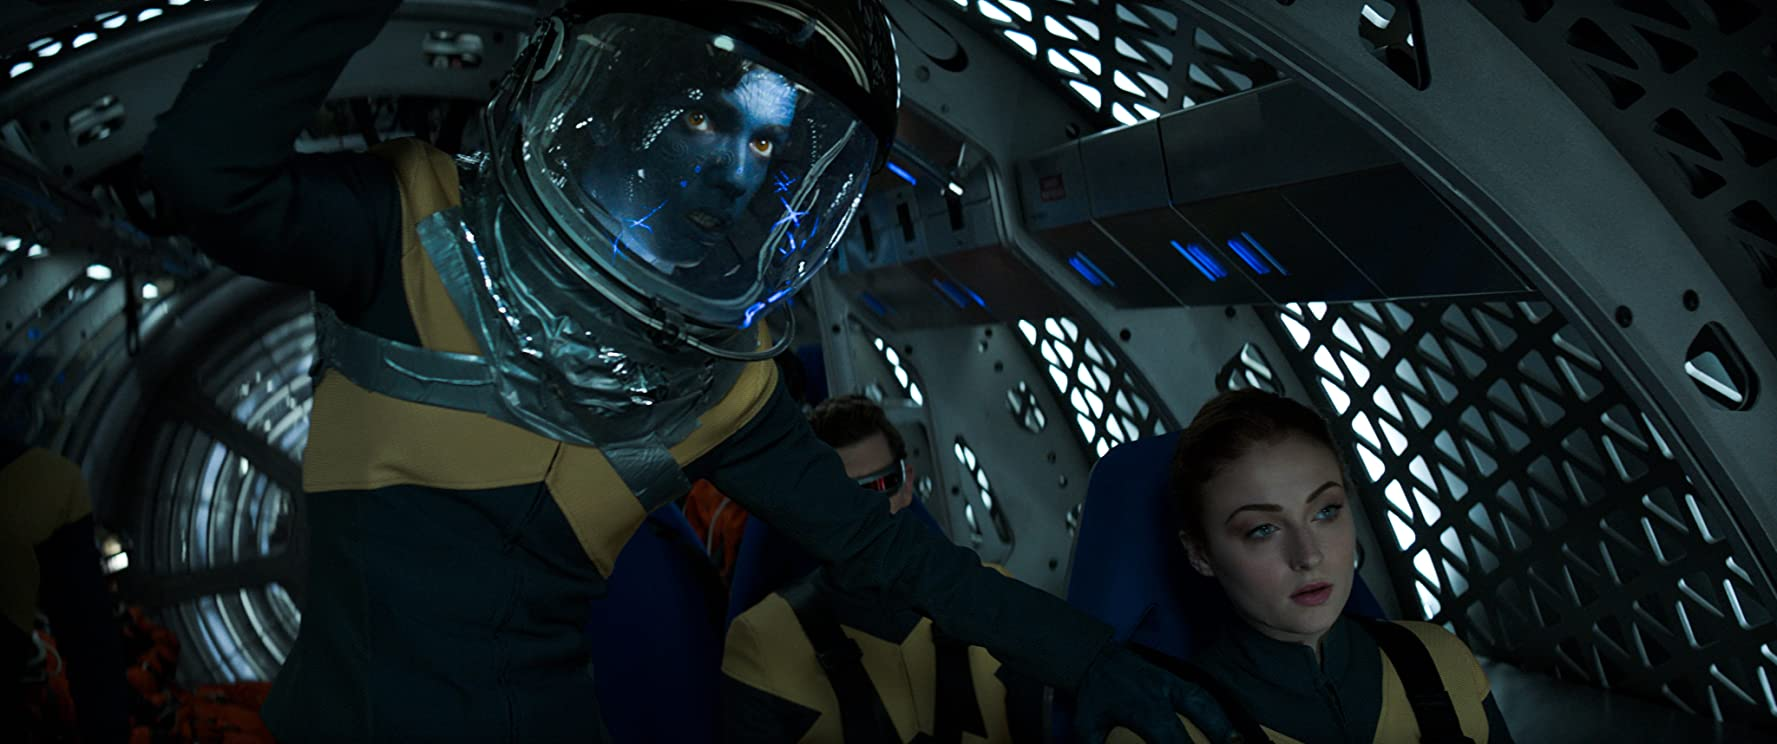 Kodi Smit-McPhee and Sophie Turner in Dark Phoenix (2019)